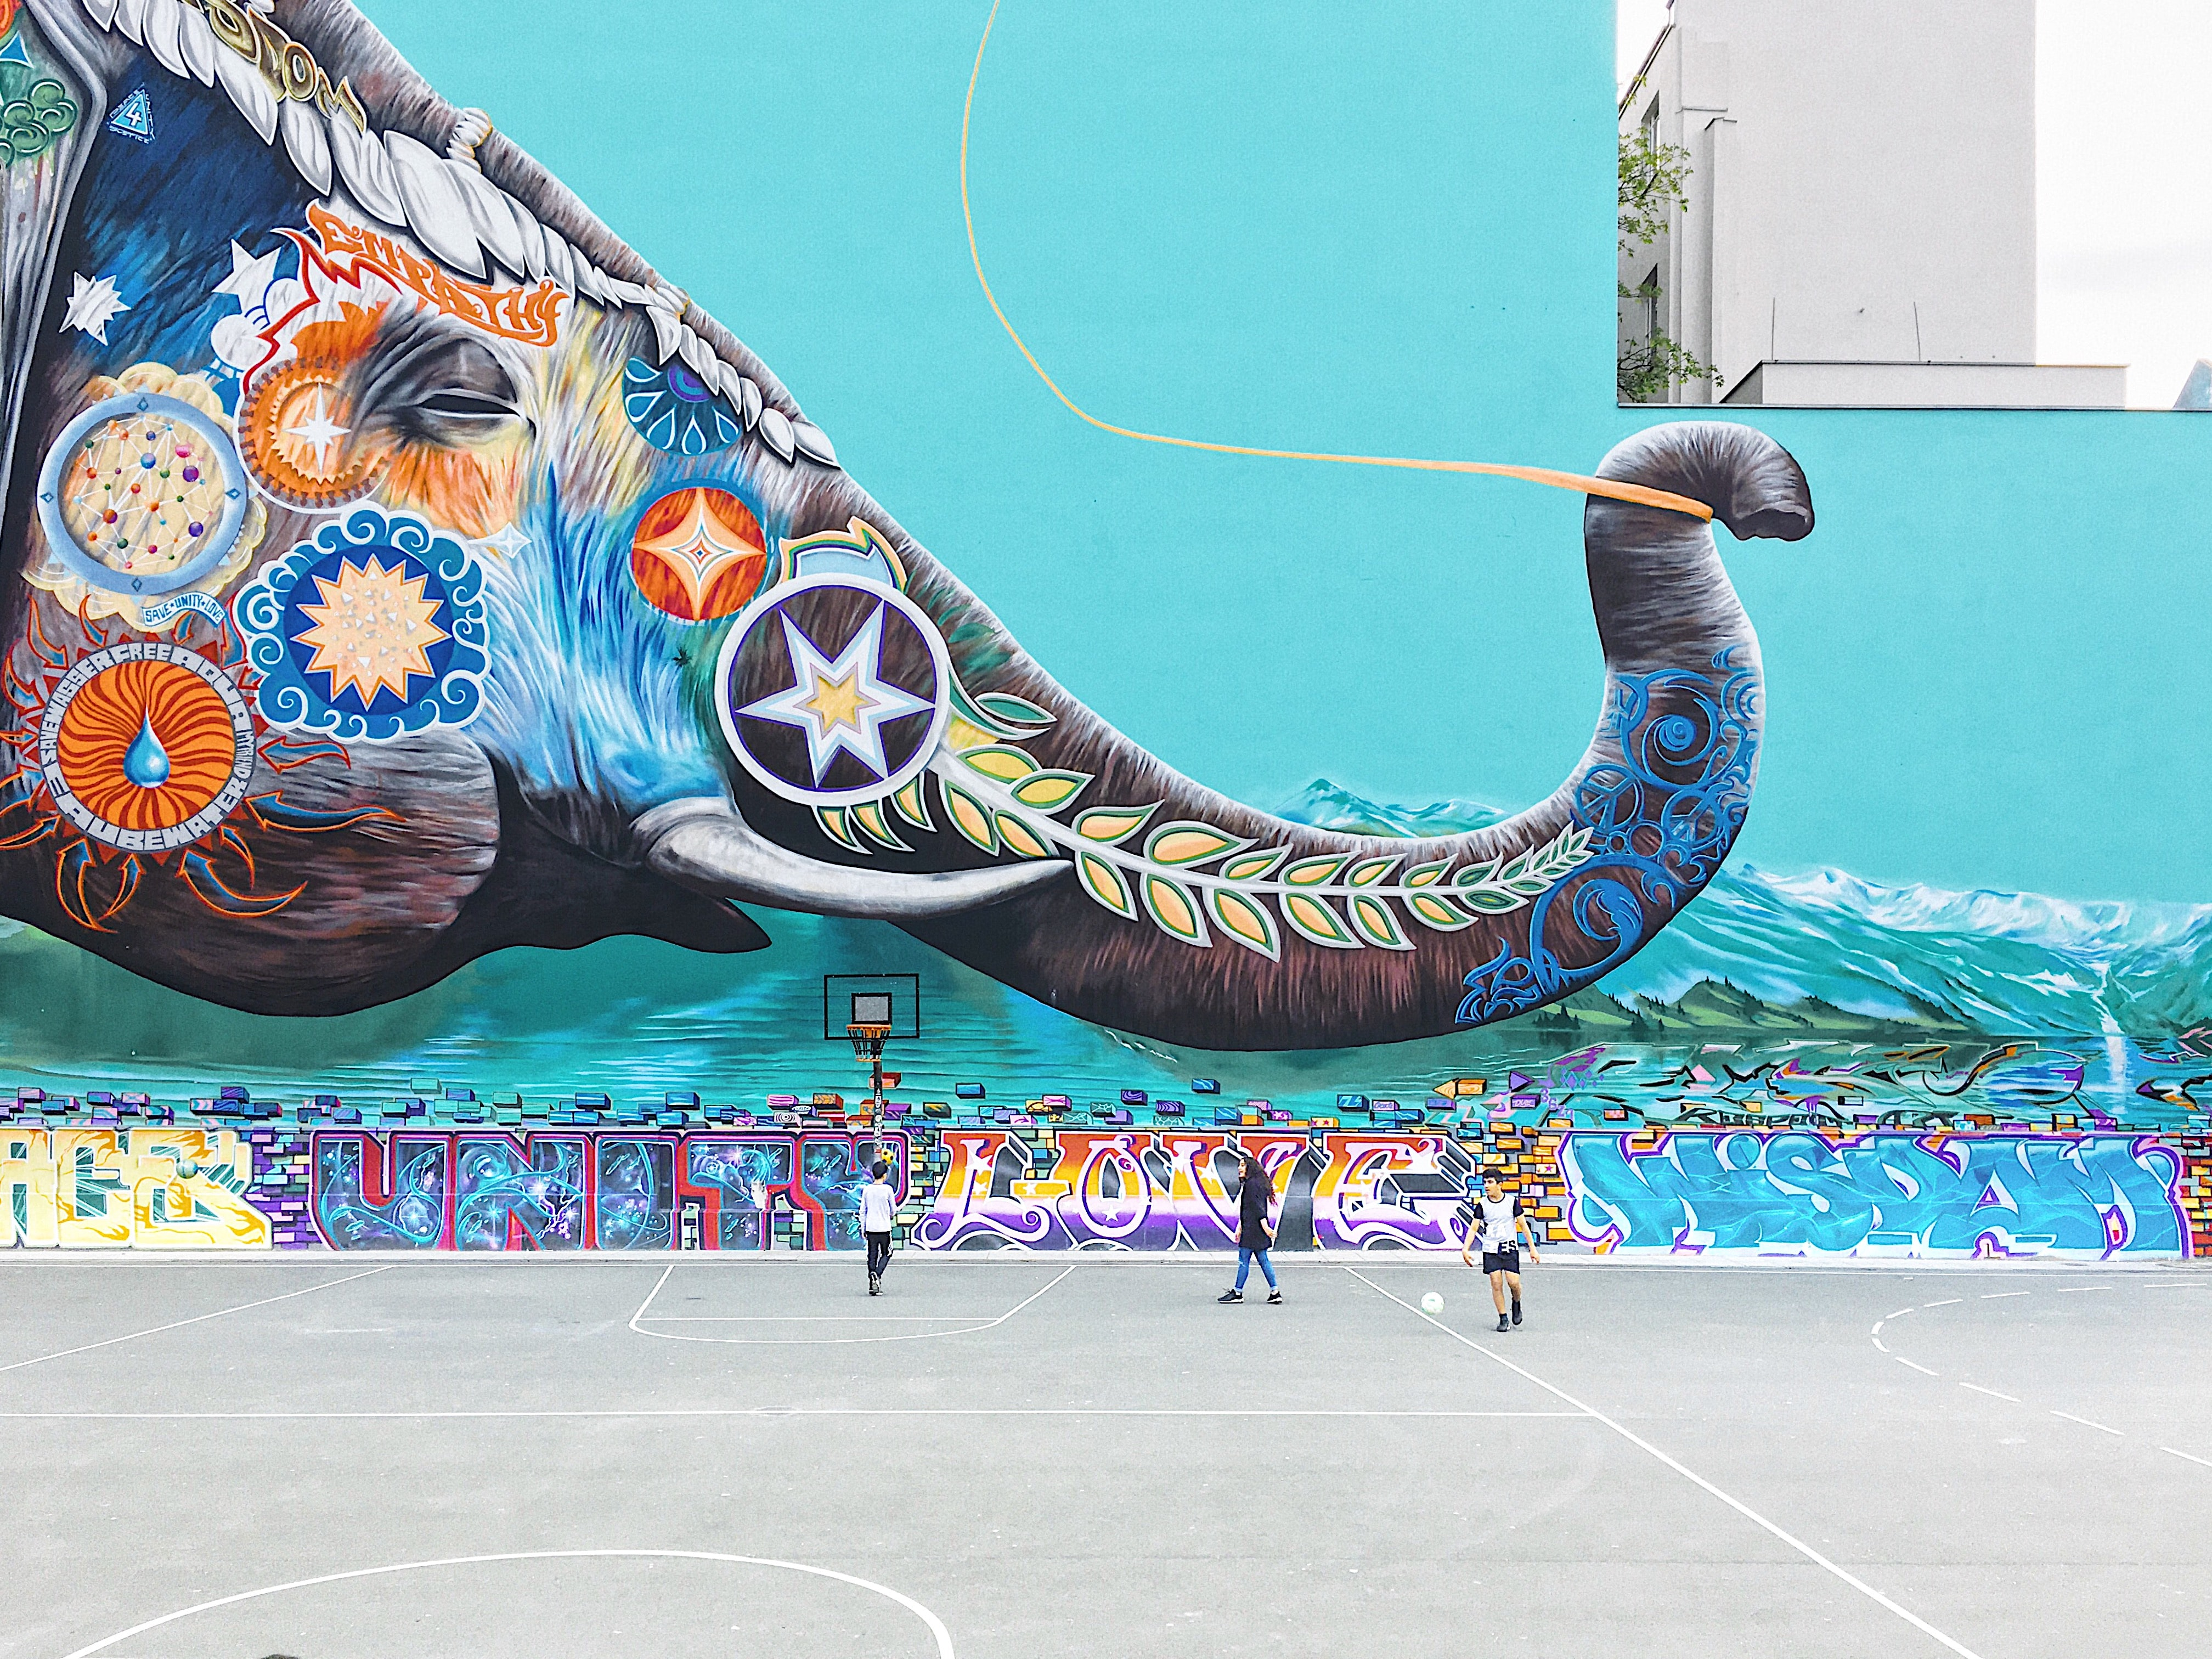 Painting of a painted elephant